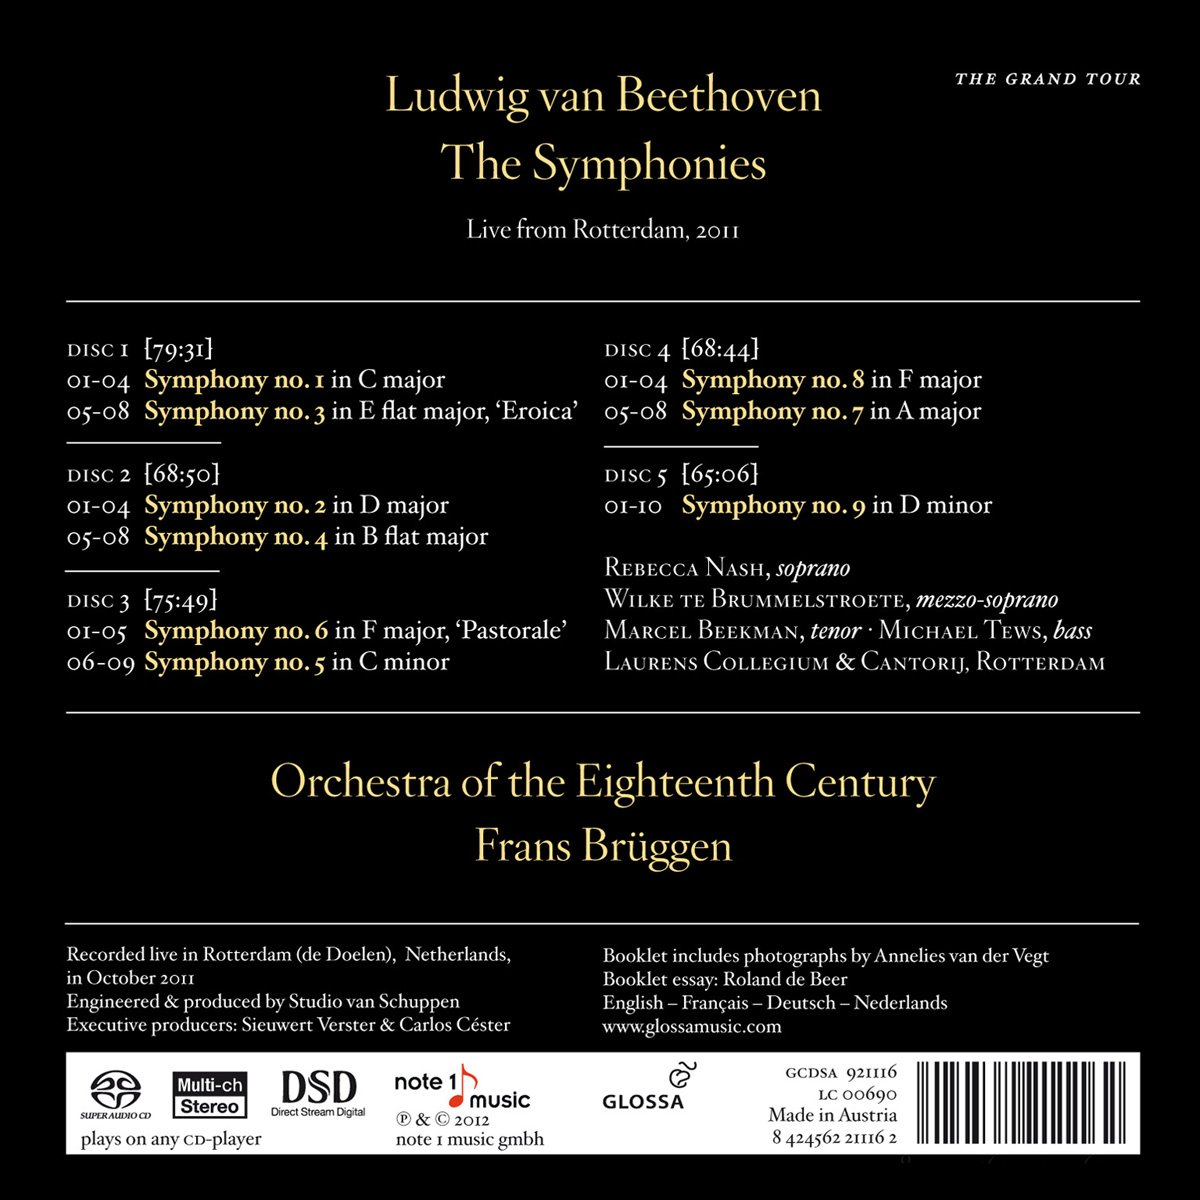 beethoven the symphonies live in rotterdam 2011 amazon co uk beethoven the symphonies live in rotterdam 2011 amazon co uk music